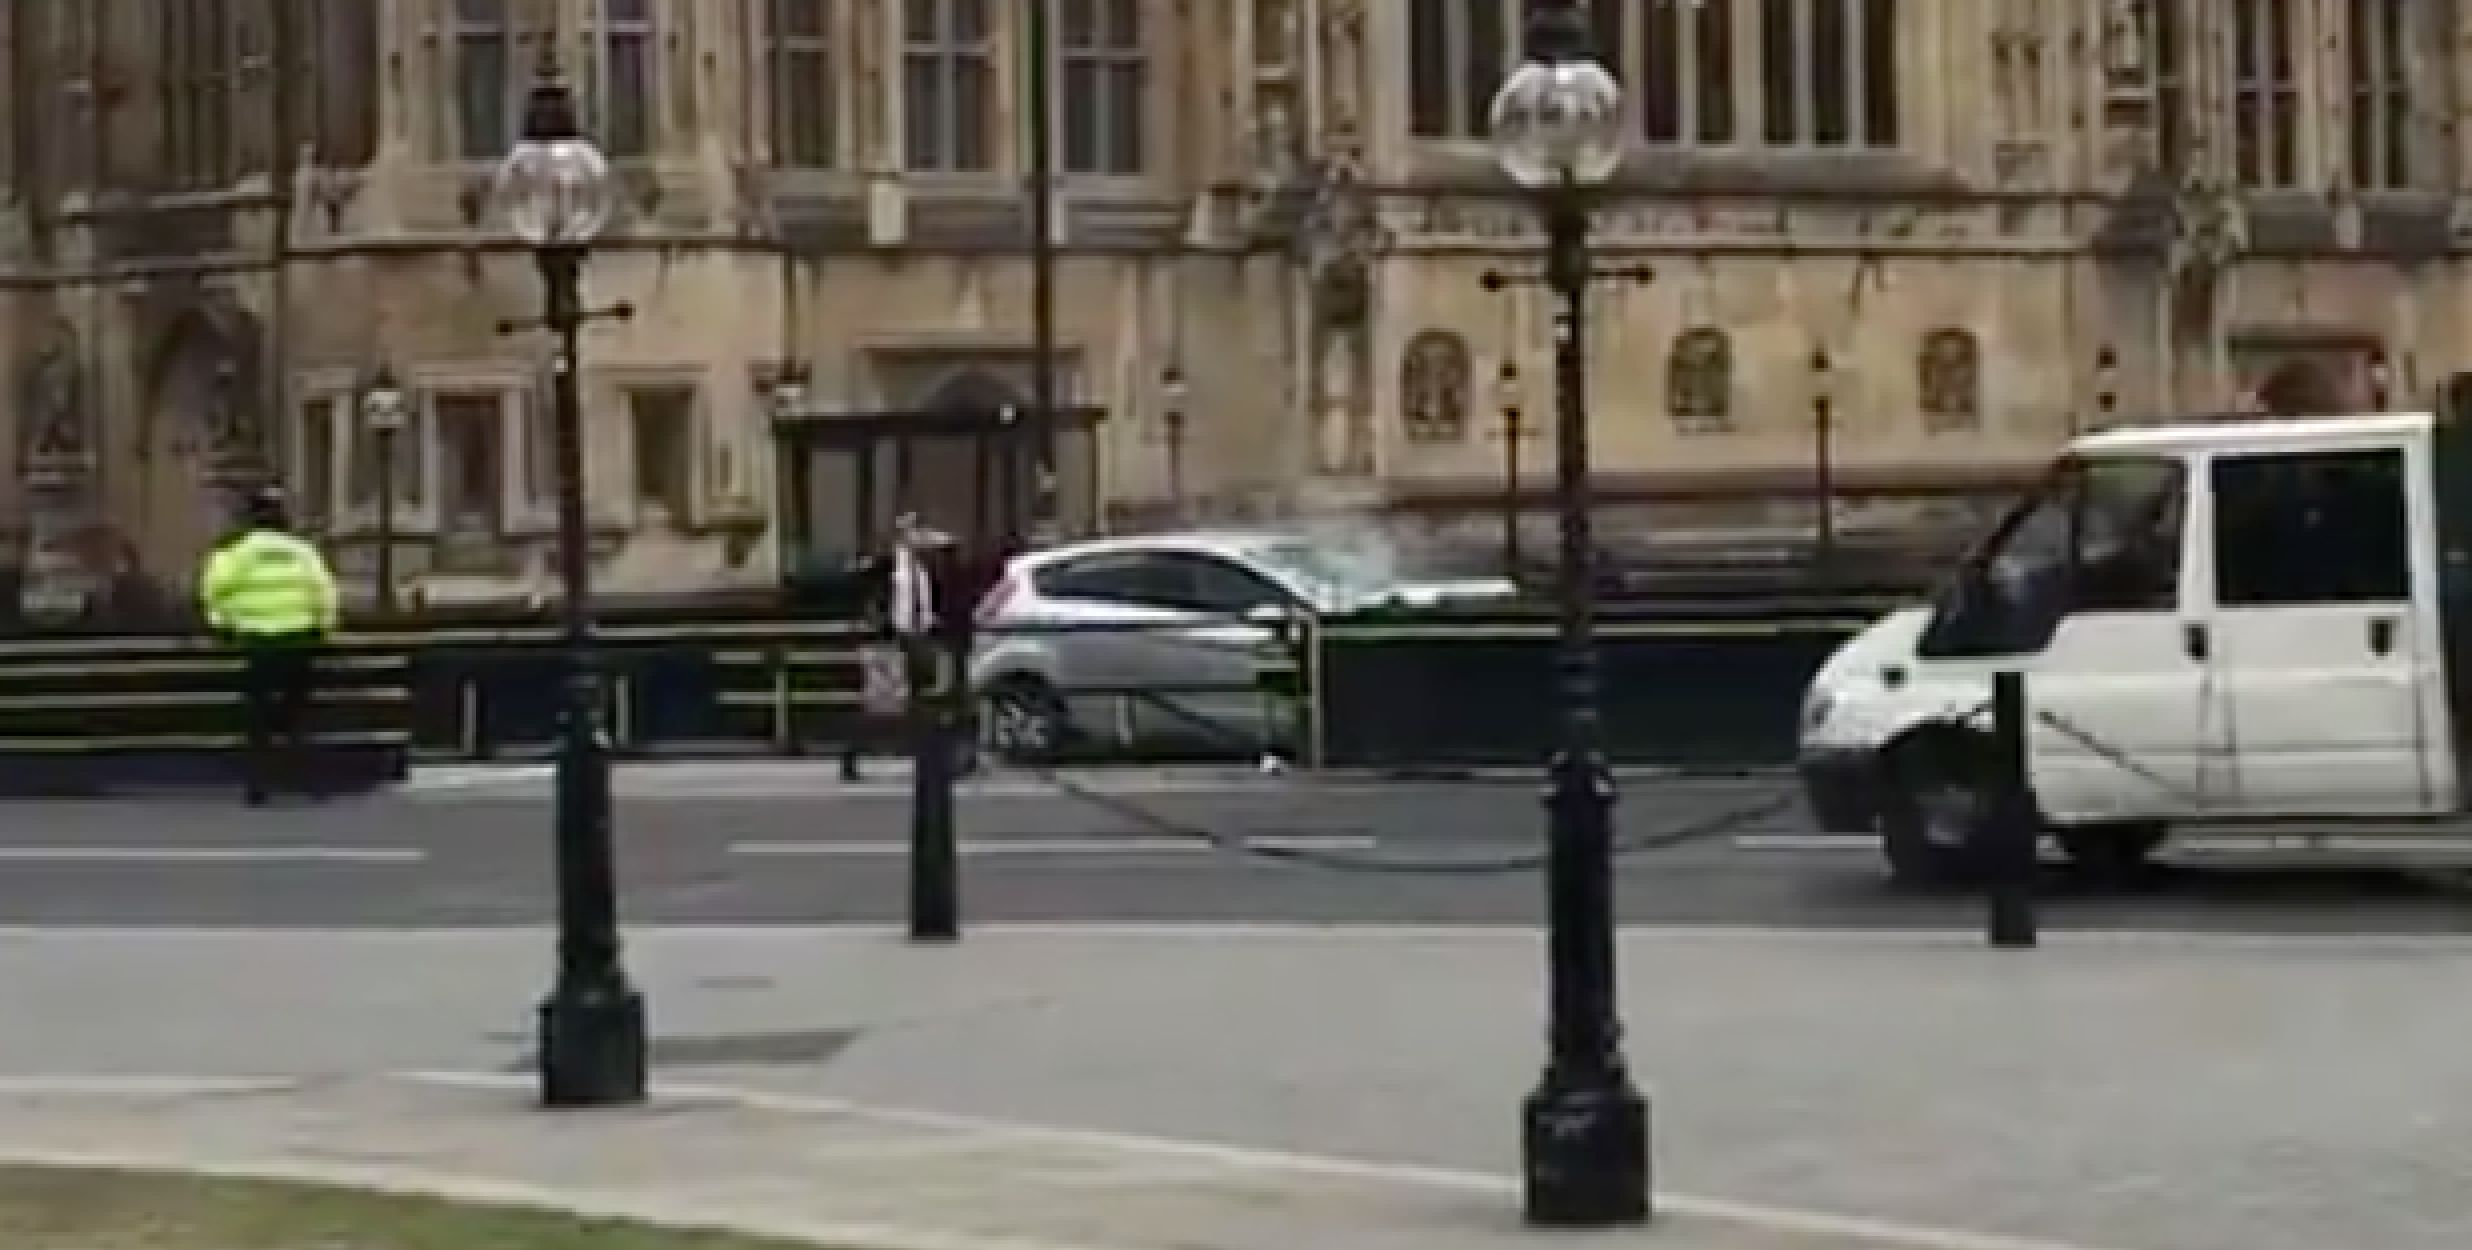 Man arrested after auto crashes into barriers outside Houses of Parliament